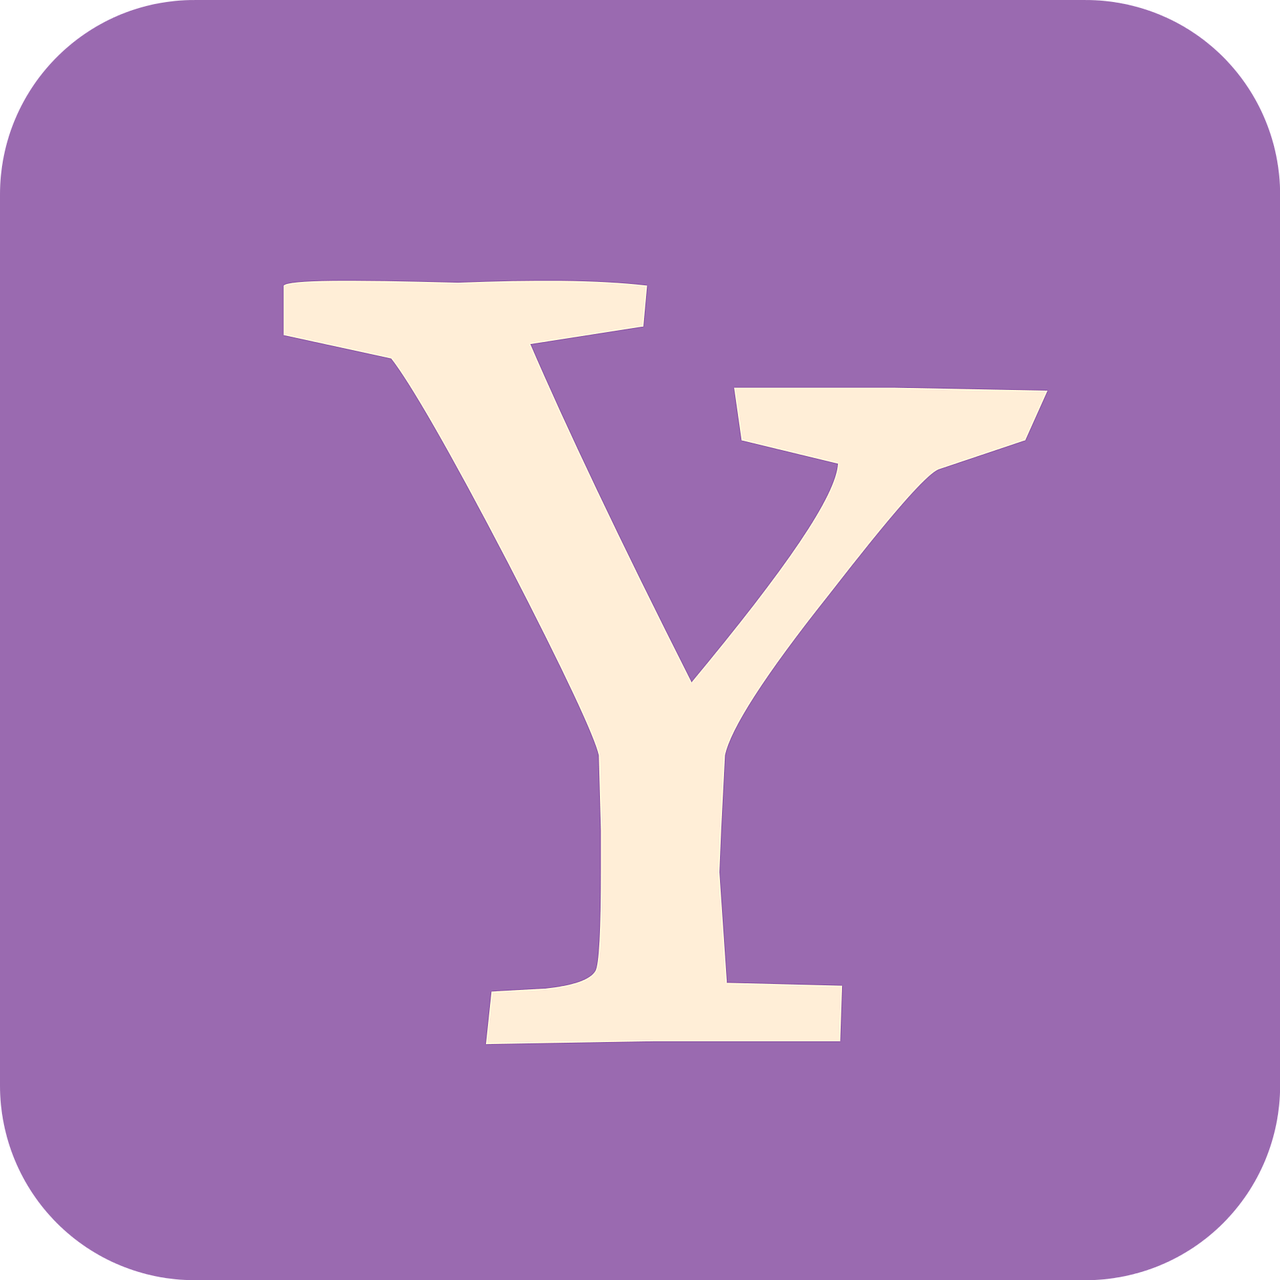 Yahoo Japan To Introduce NFT Trading In Partnership With Line